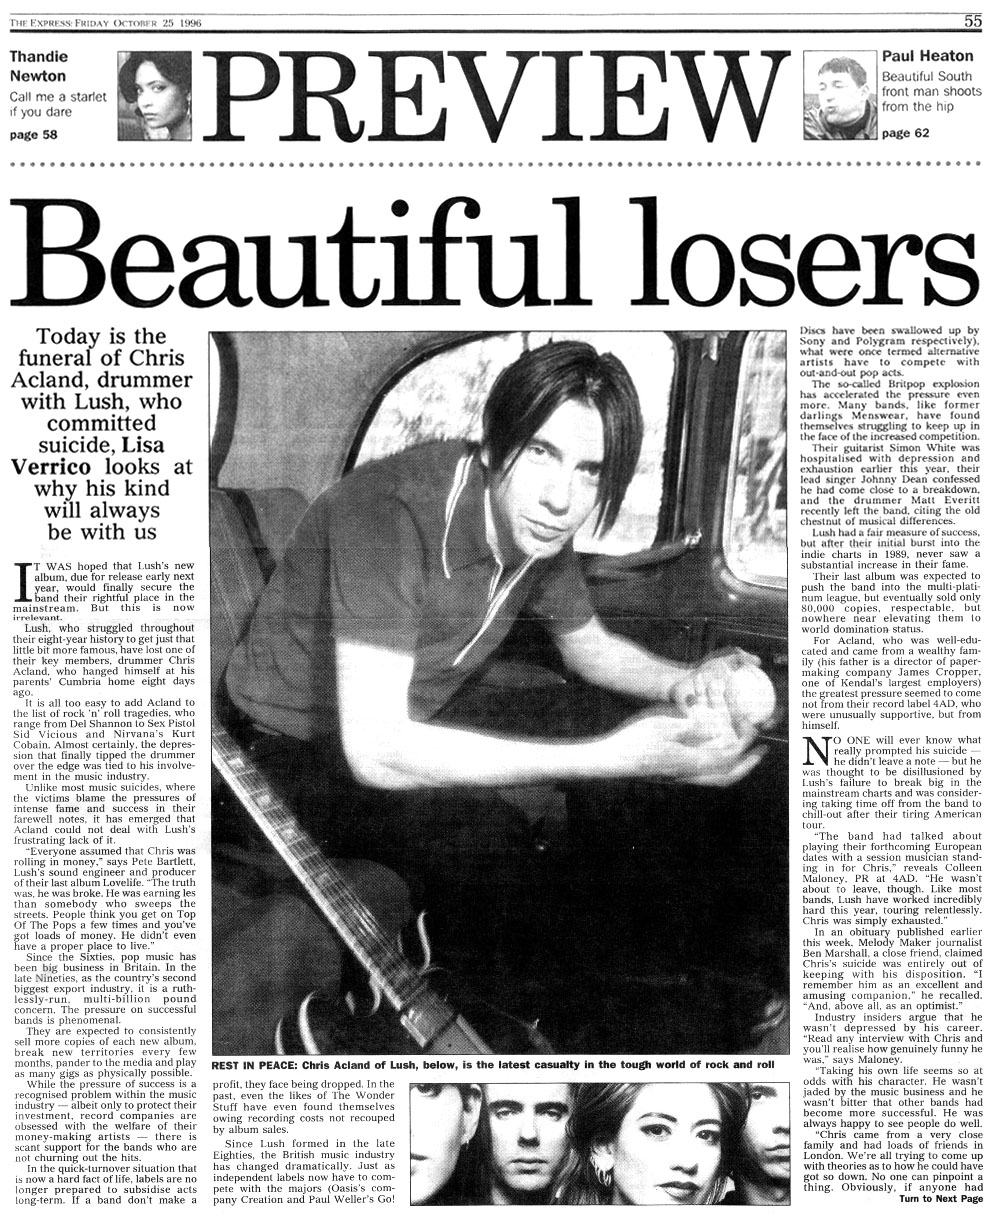 Lush news paper article The Express - Beautiful Losers - p1.jpg